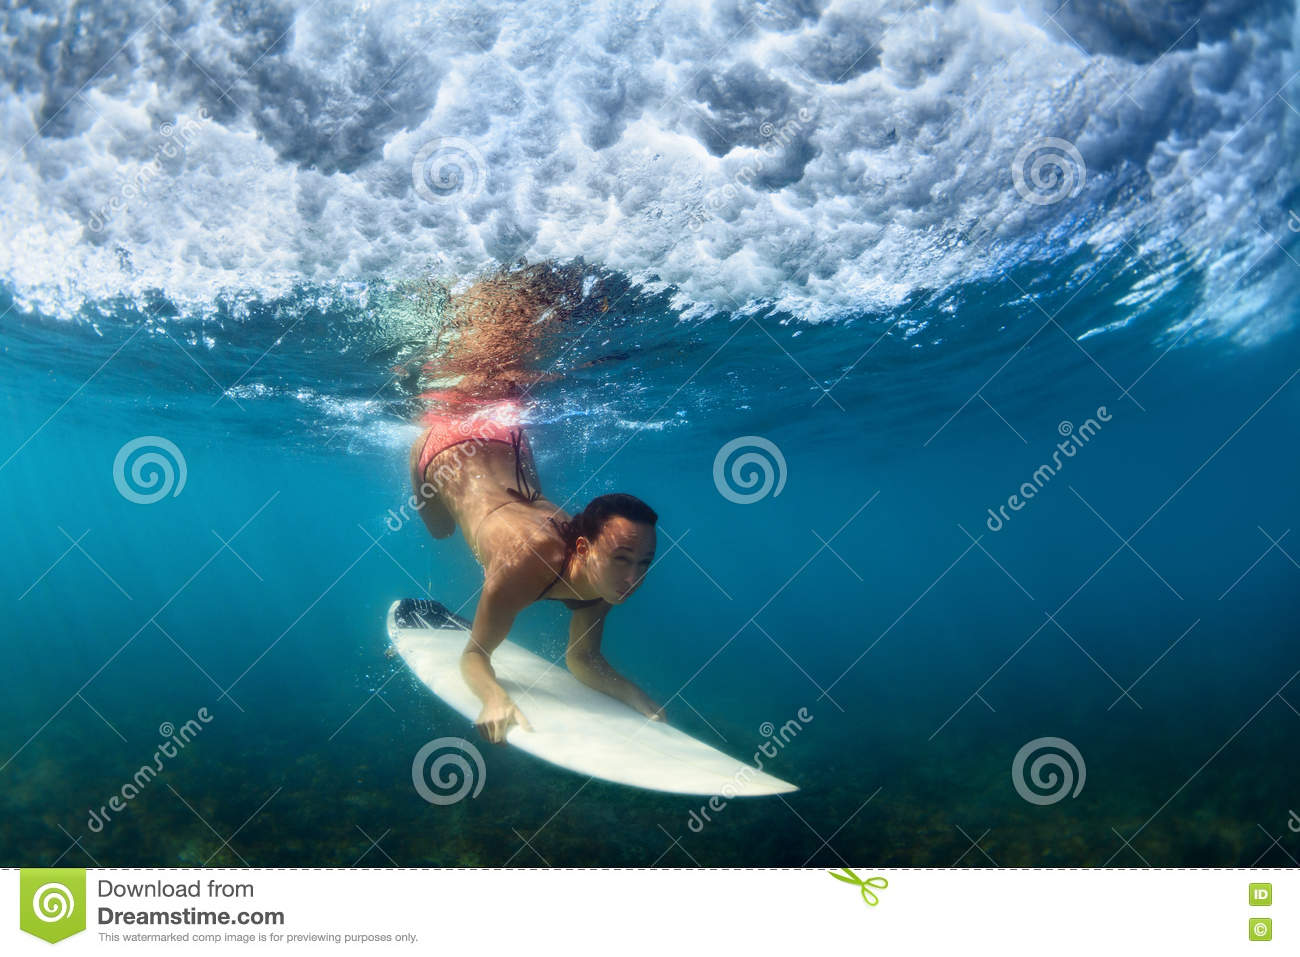 Underwater photo of surfer girl on surf board in ocean